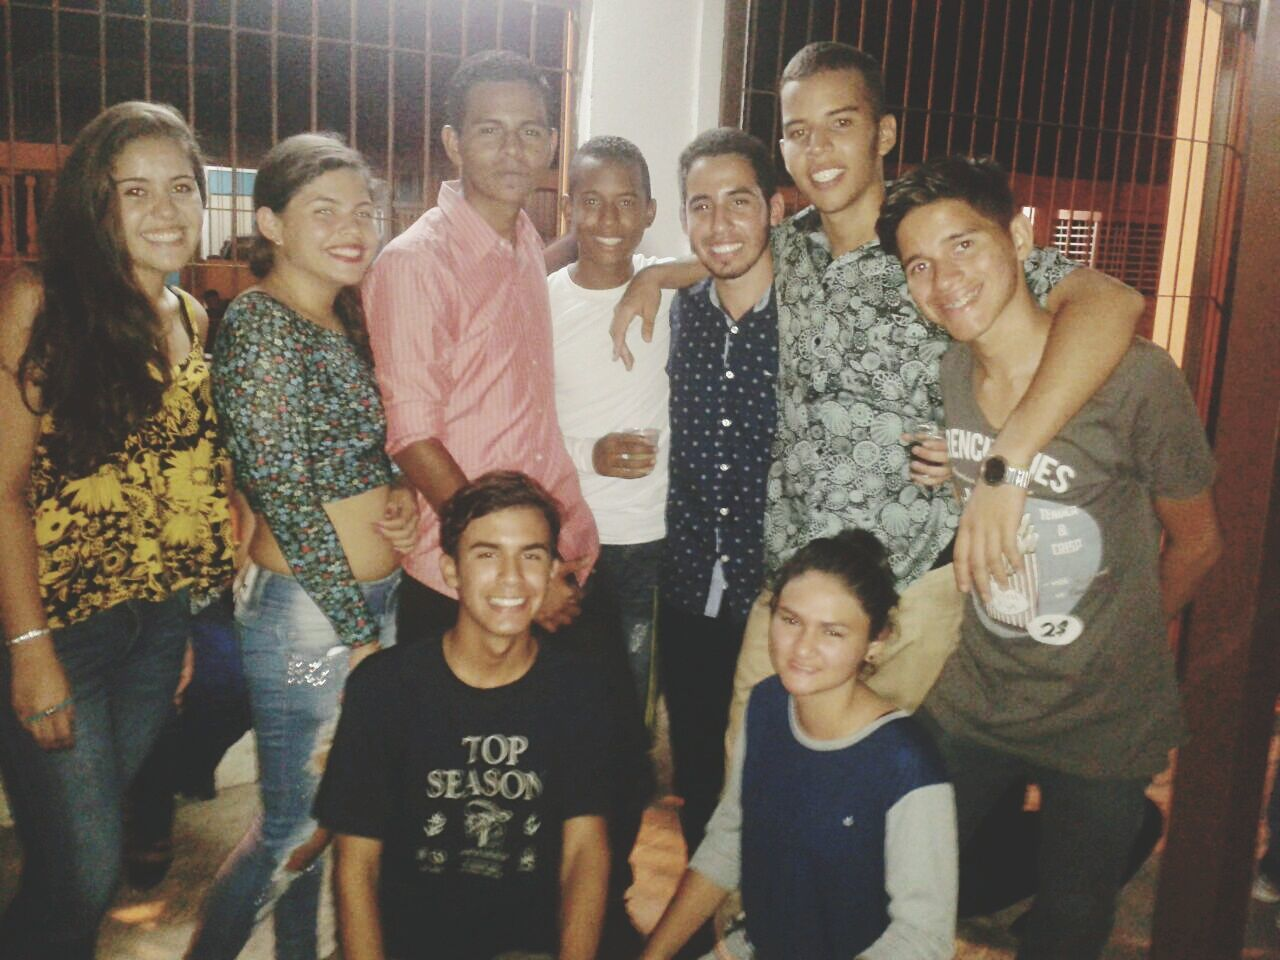 young men, portrait, togetherness, standing, young adult, medium group of people, looking at camera, smiling, leisure activity, front view, young women, casual clothing, friendship, selfie, men, indoors, day, adult, people, adults only